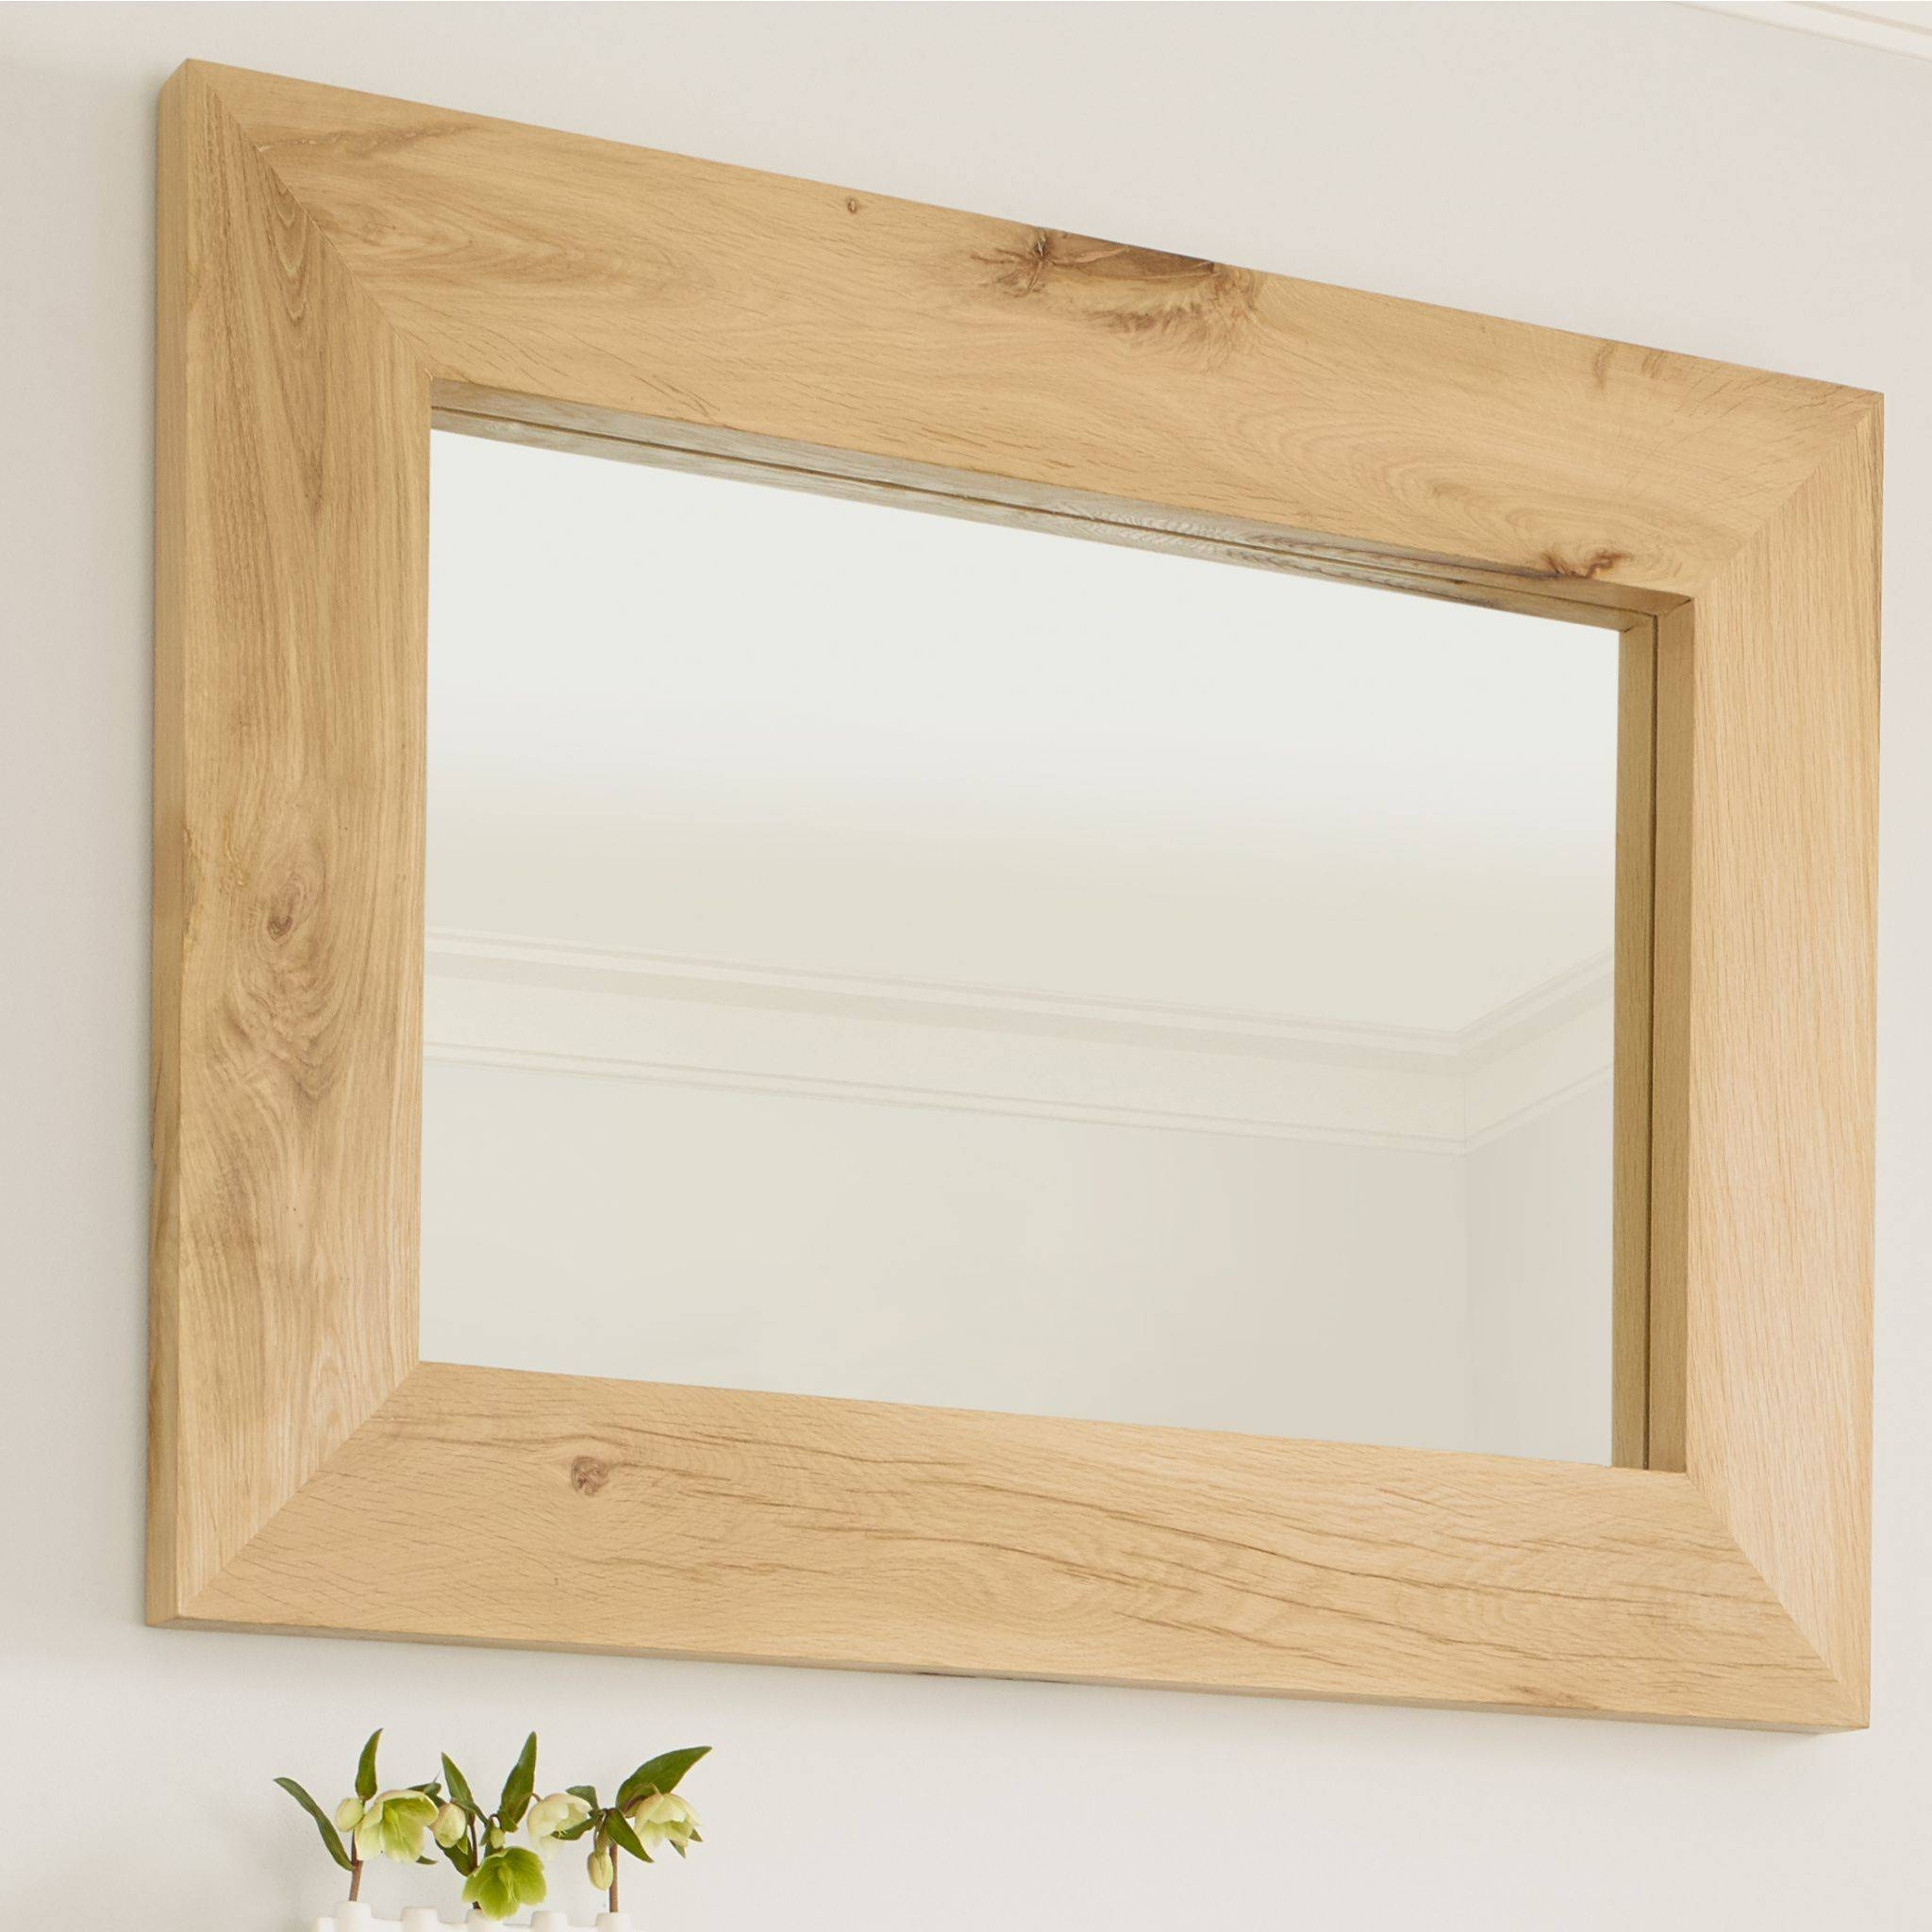 Oak Mirror Canterbury Solid French Rustic Beam intended for Rustic Oak Mirrors (Image 12 of 25)